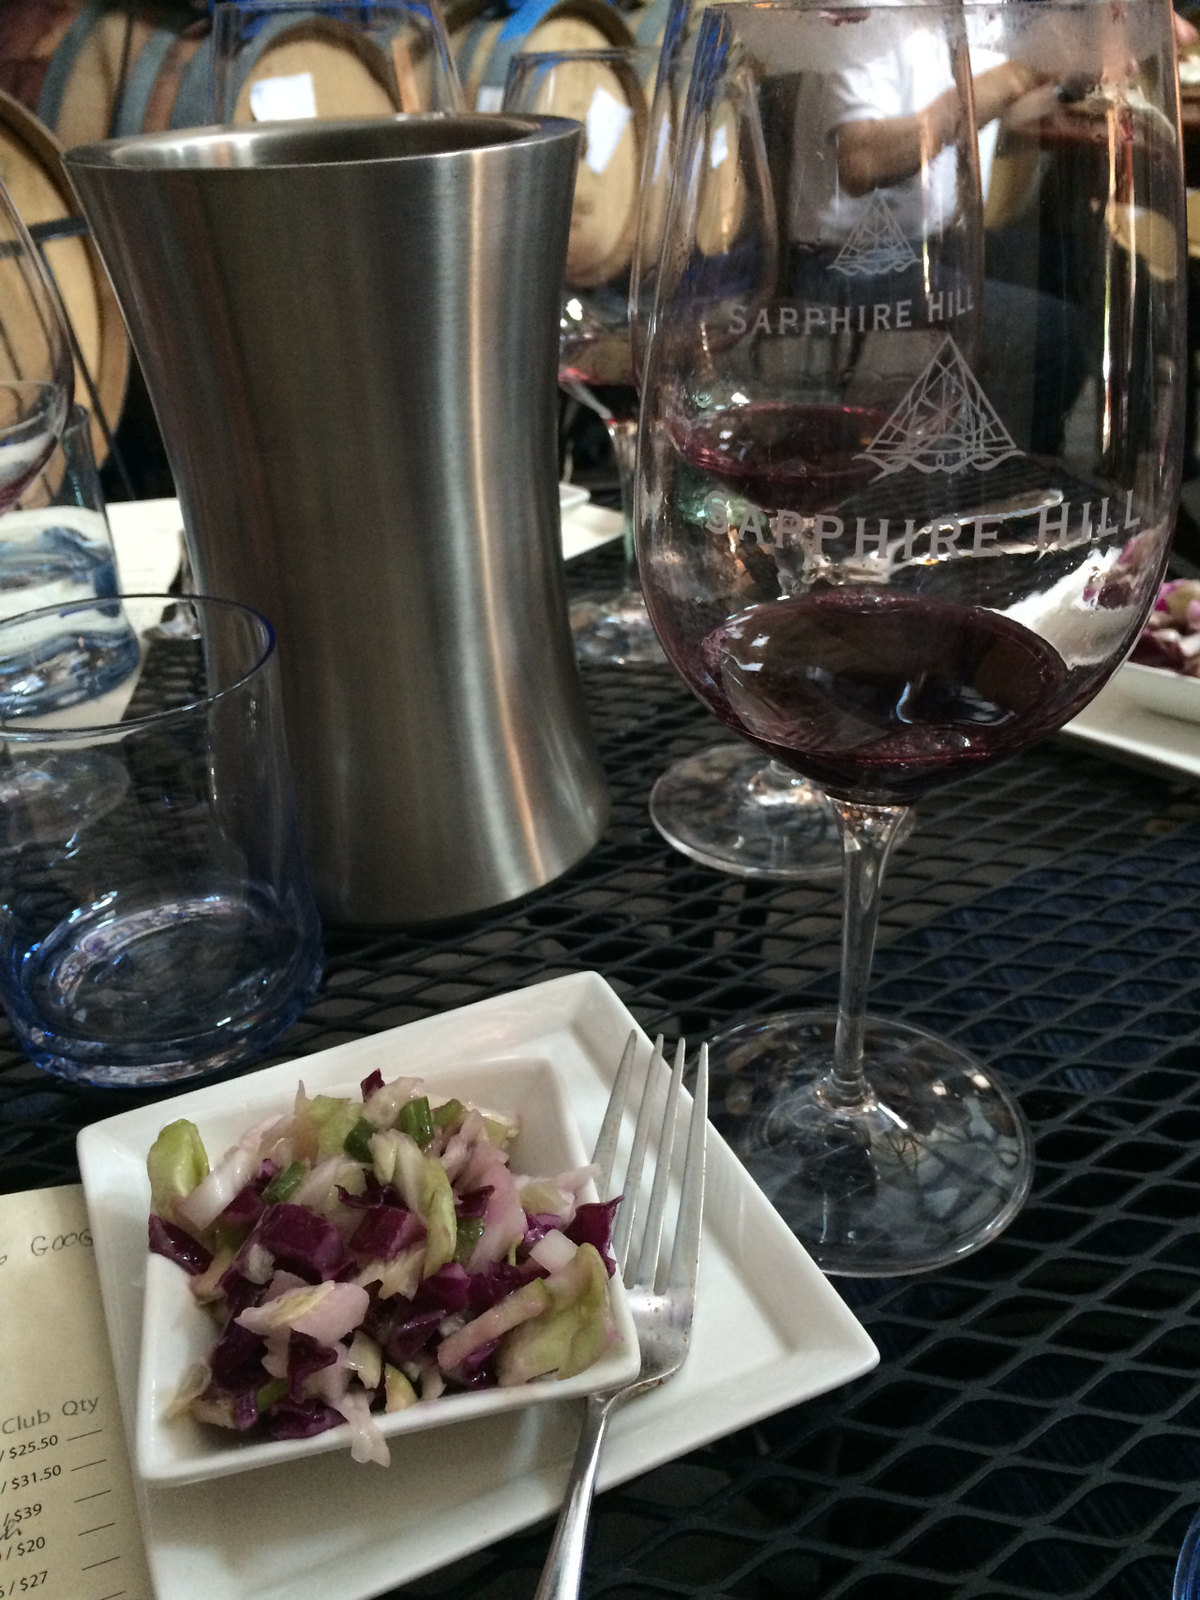 Sapphire Hill Food and Wine Pairing Lunch 3